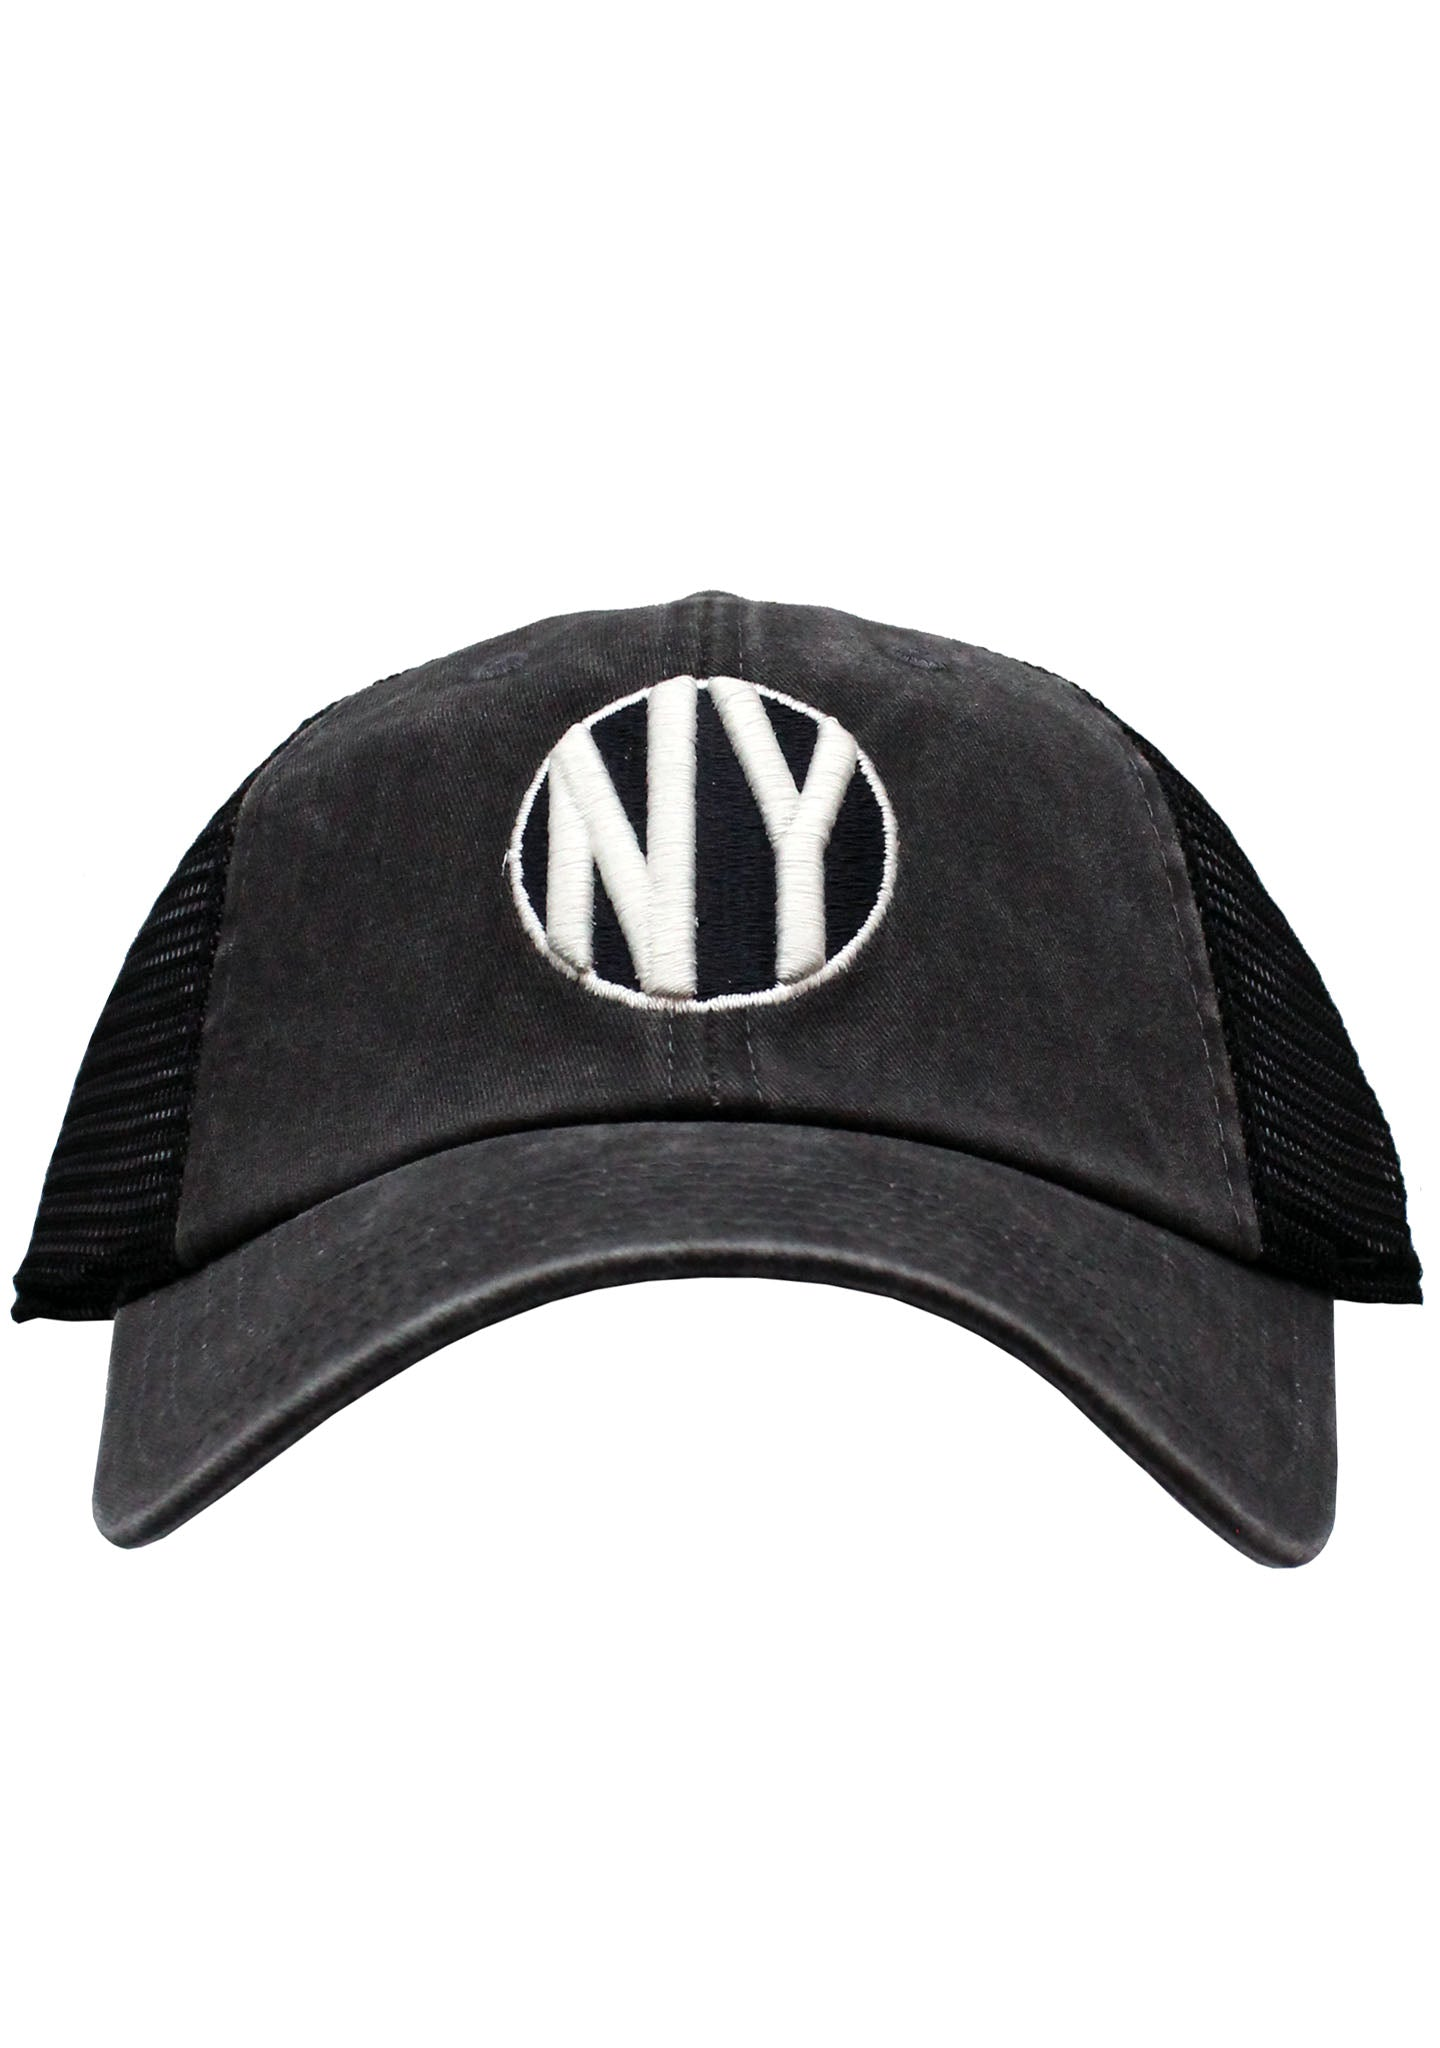 4a3291a57d6 New York Raglan Bones Hat in Black